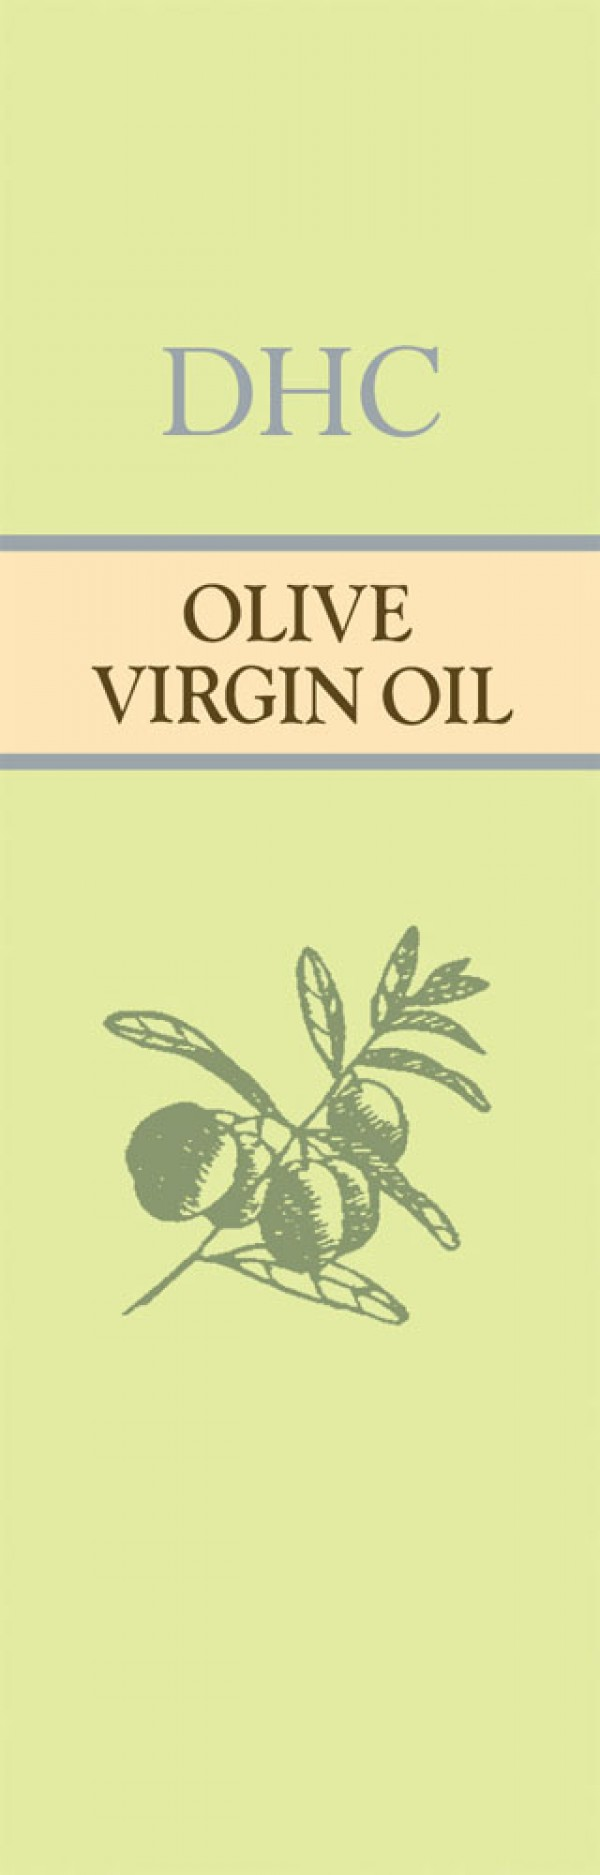 DHC Olive Virgin Oil 30 ml.